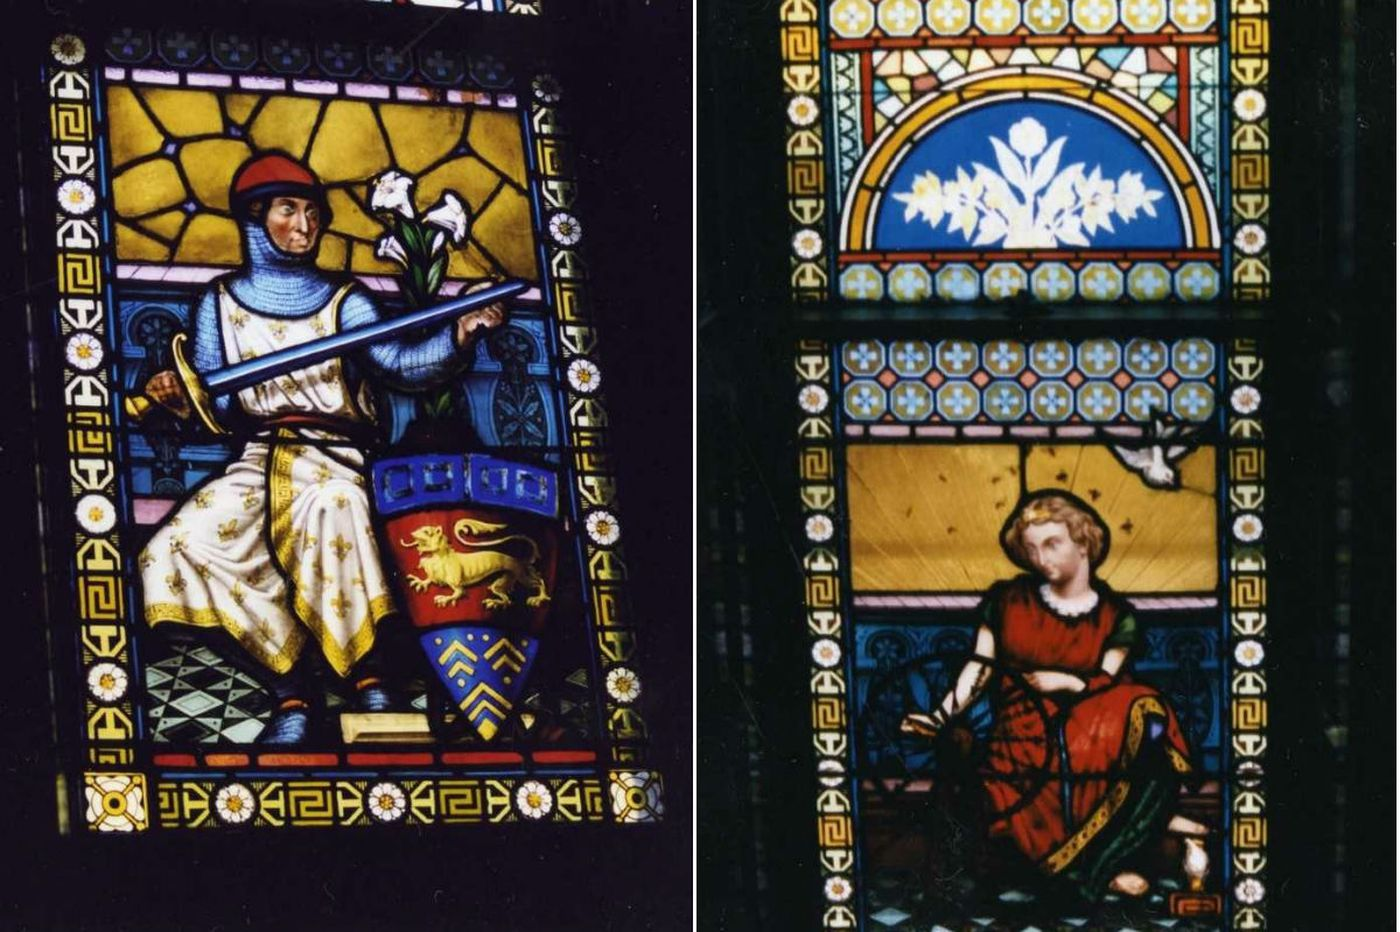 8-foot stained-glass windows stolen in burglary of historic N. Phila. mansion